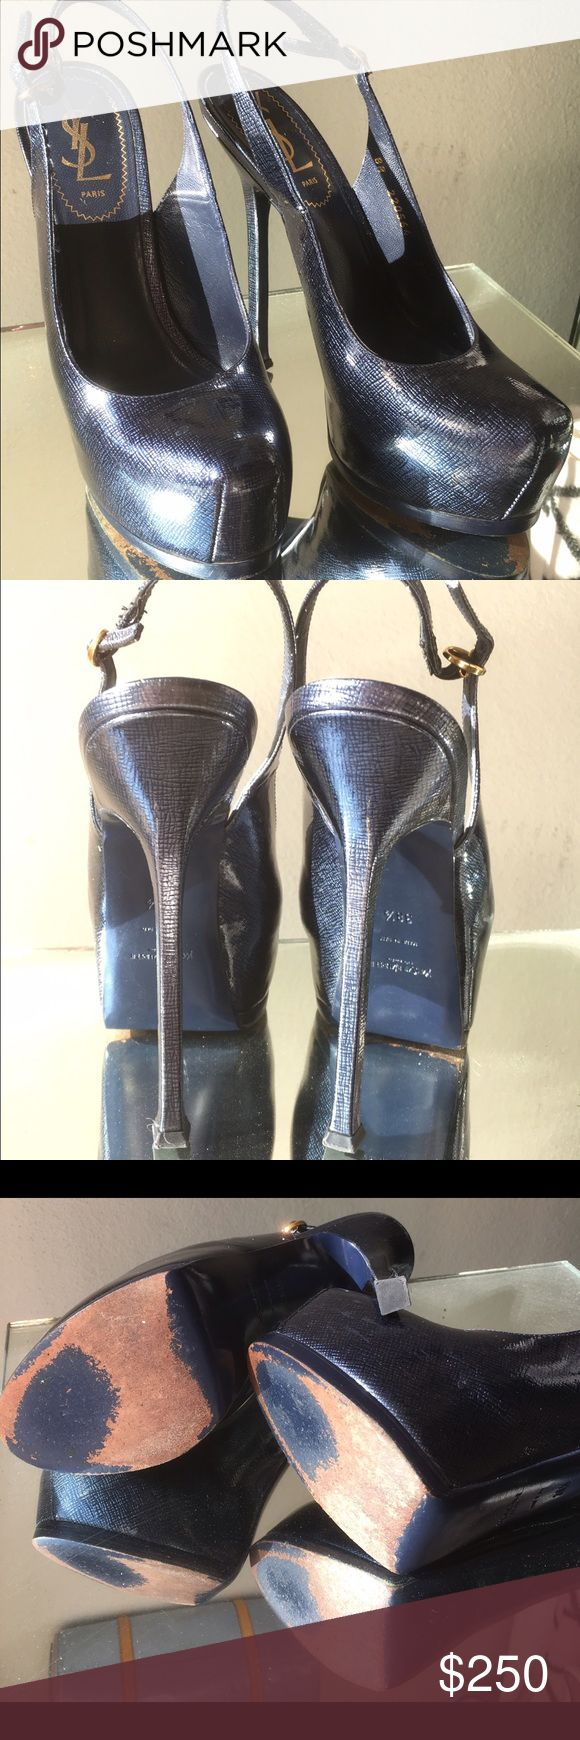 YsL tribute navy high heel shoes 38 Authentic tribute patent leather YSL shoes. Size 38. In good condition. Sole wear. Yves Saint Laurent Shoes Heels